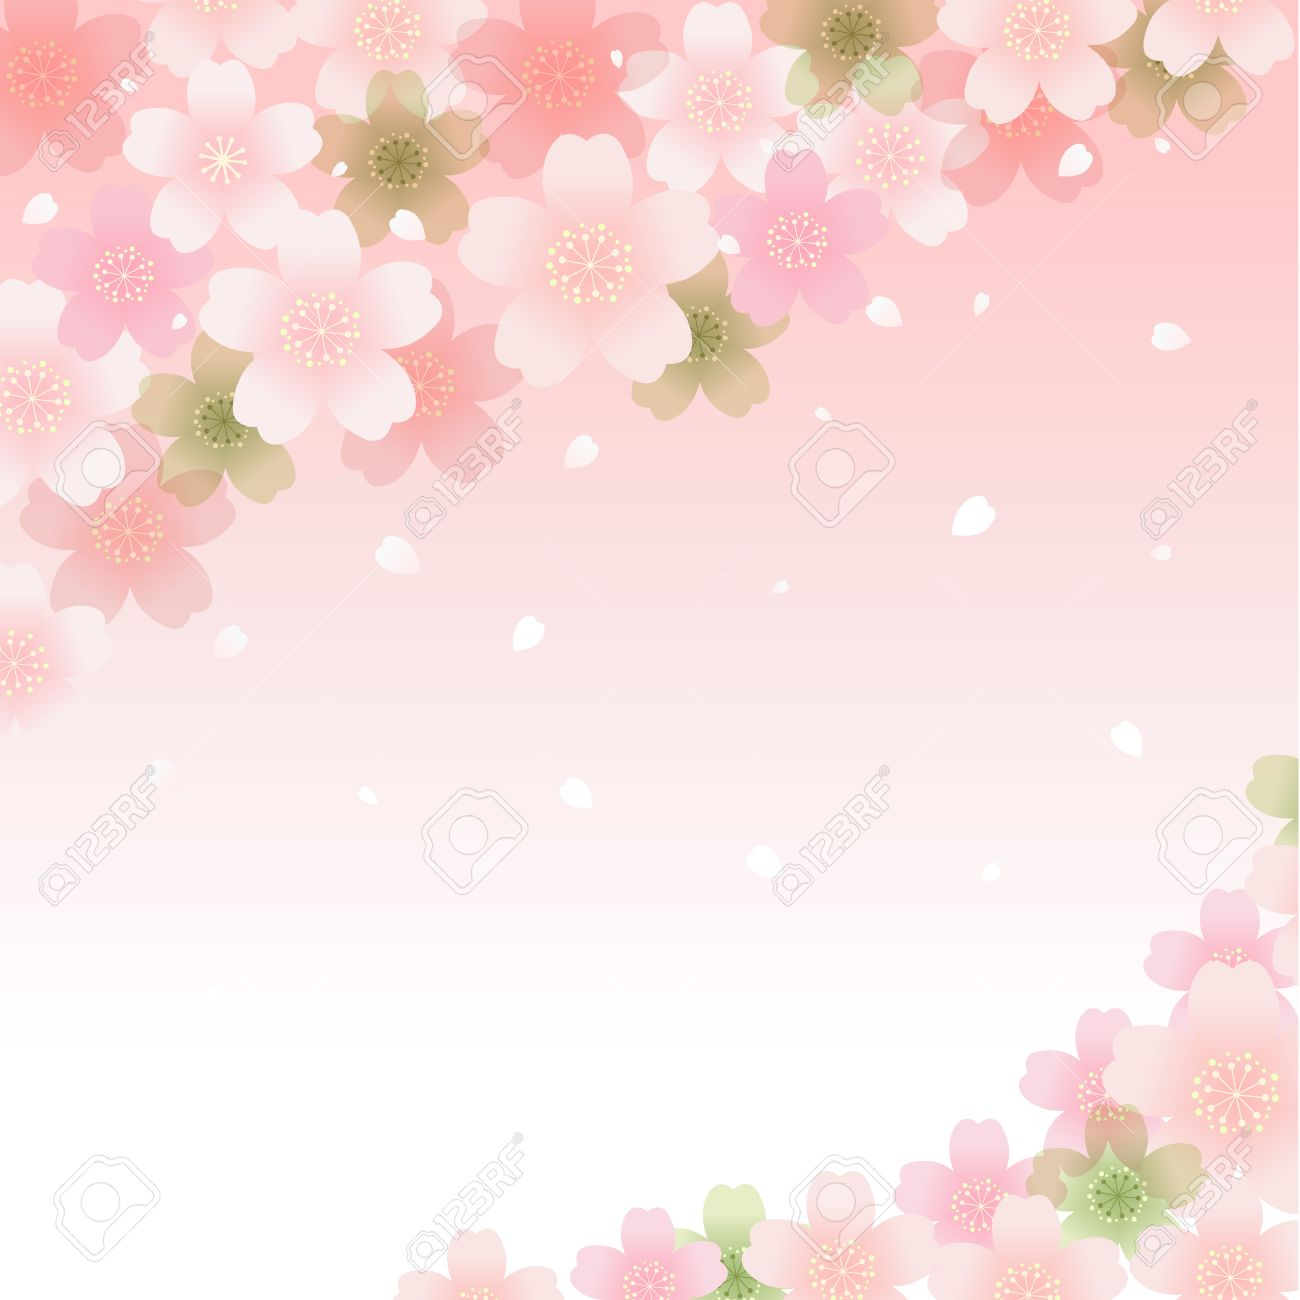 Background image transparency - Sakura Cherry Blossom Background Transparency Gradients Clipping Mask Is Used Eps10 Stock Vector